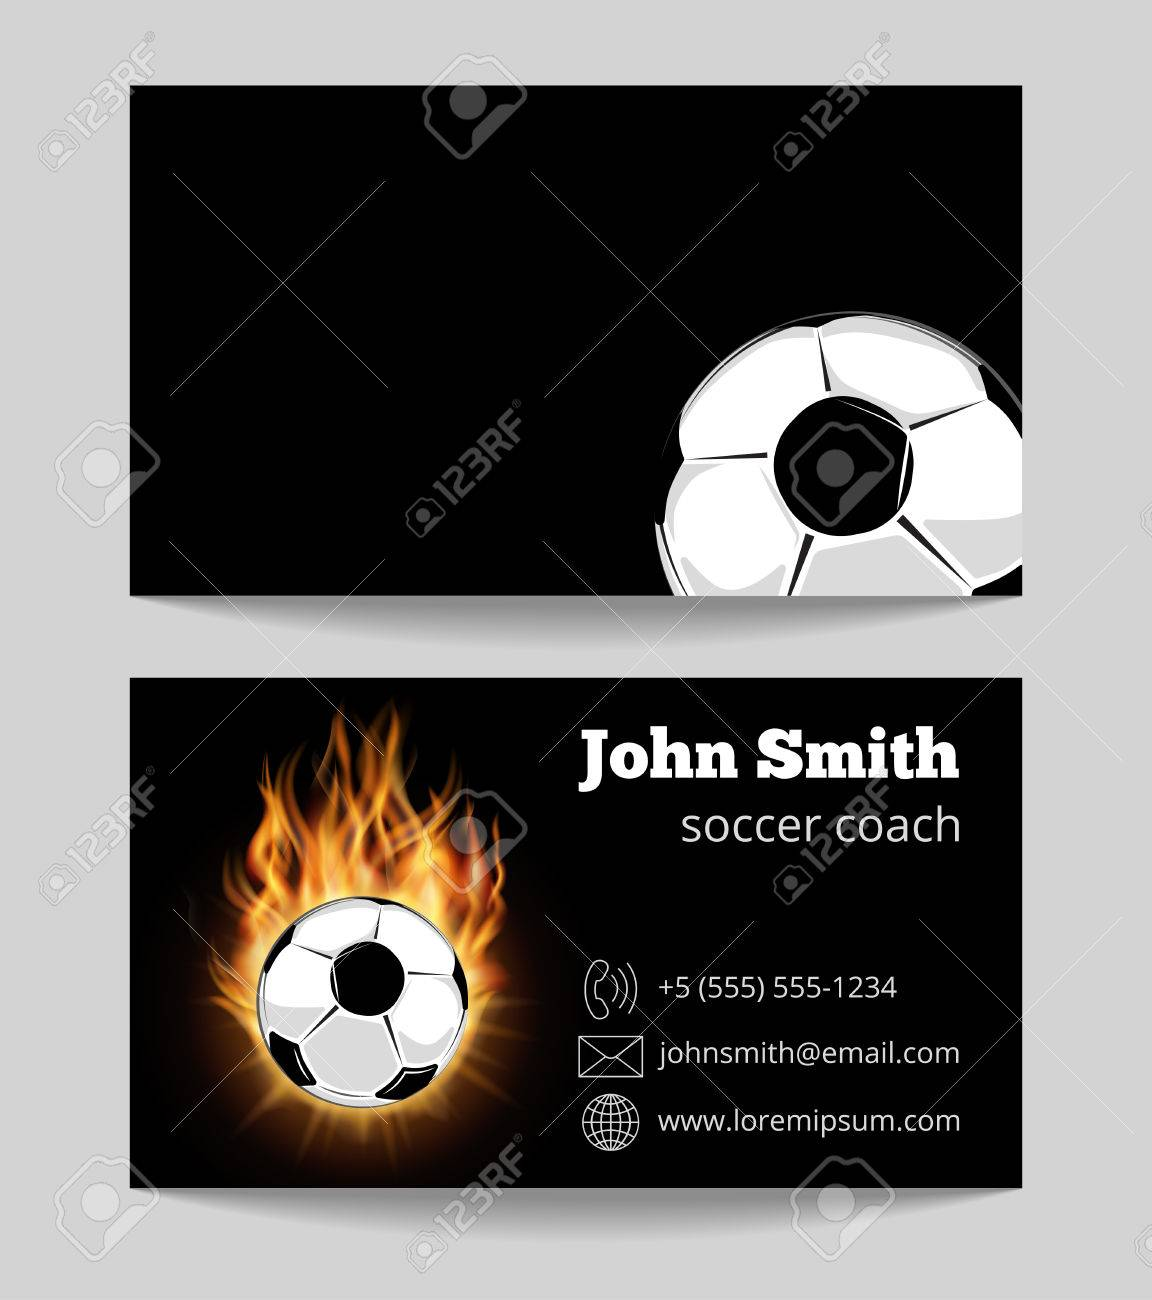 Soccer Black Business Card Template. Soccer Ball In Fire. Vector ...